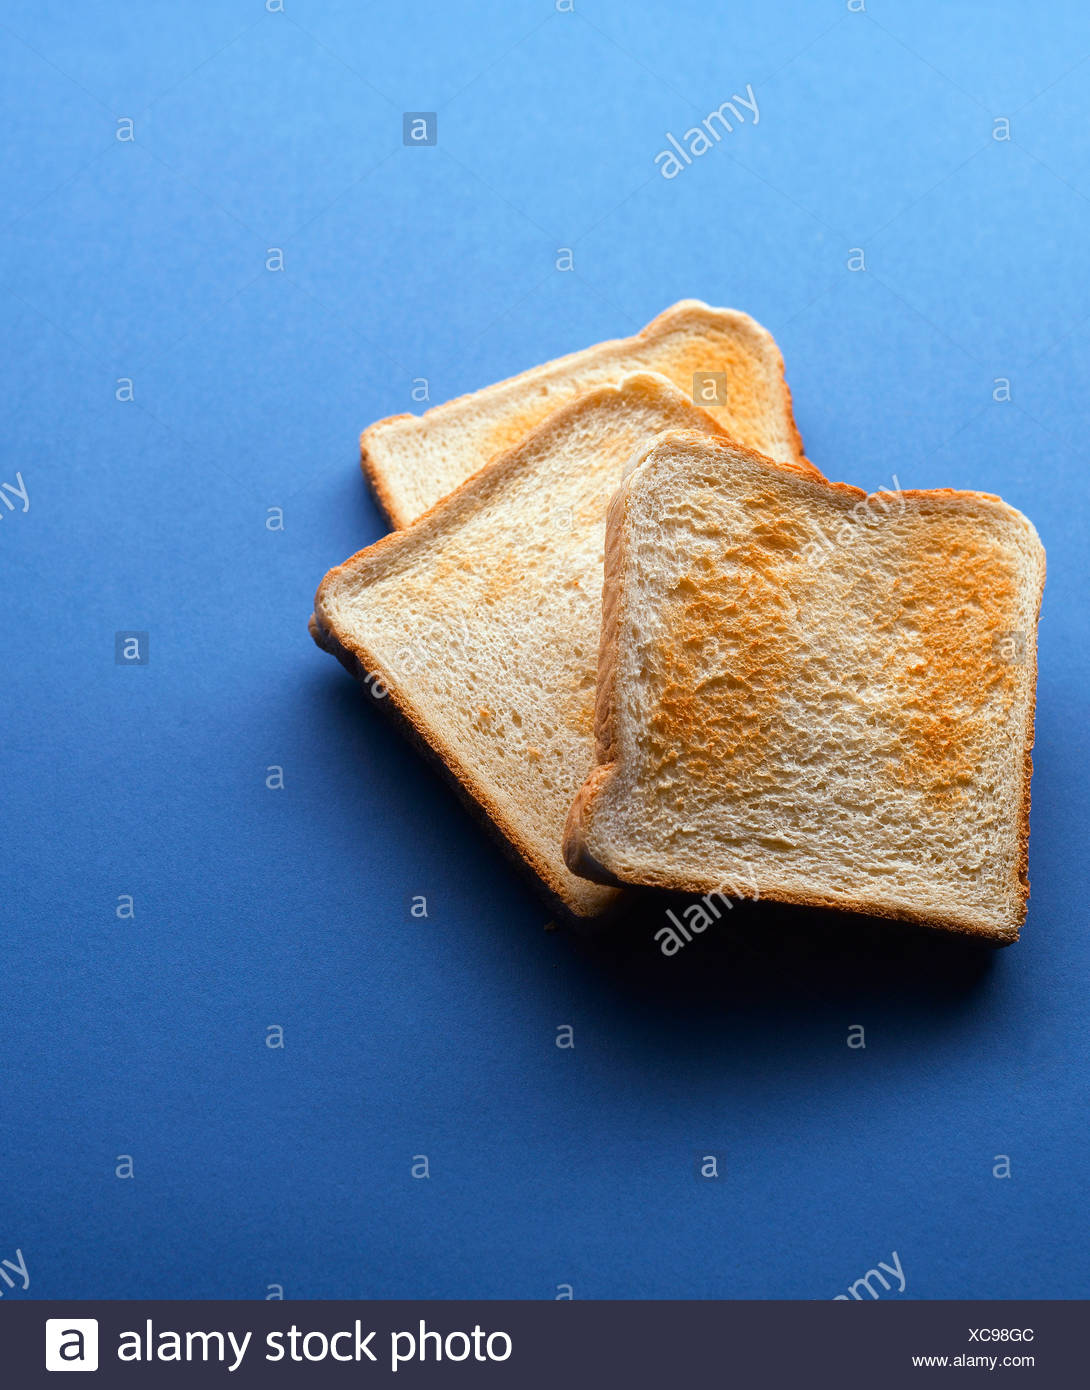 Toasted bread slices on blue background - Stock Image